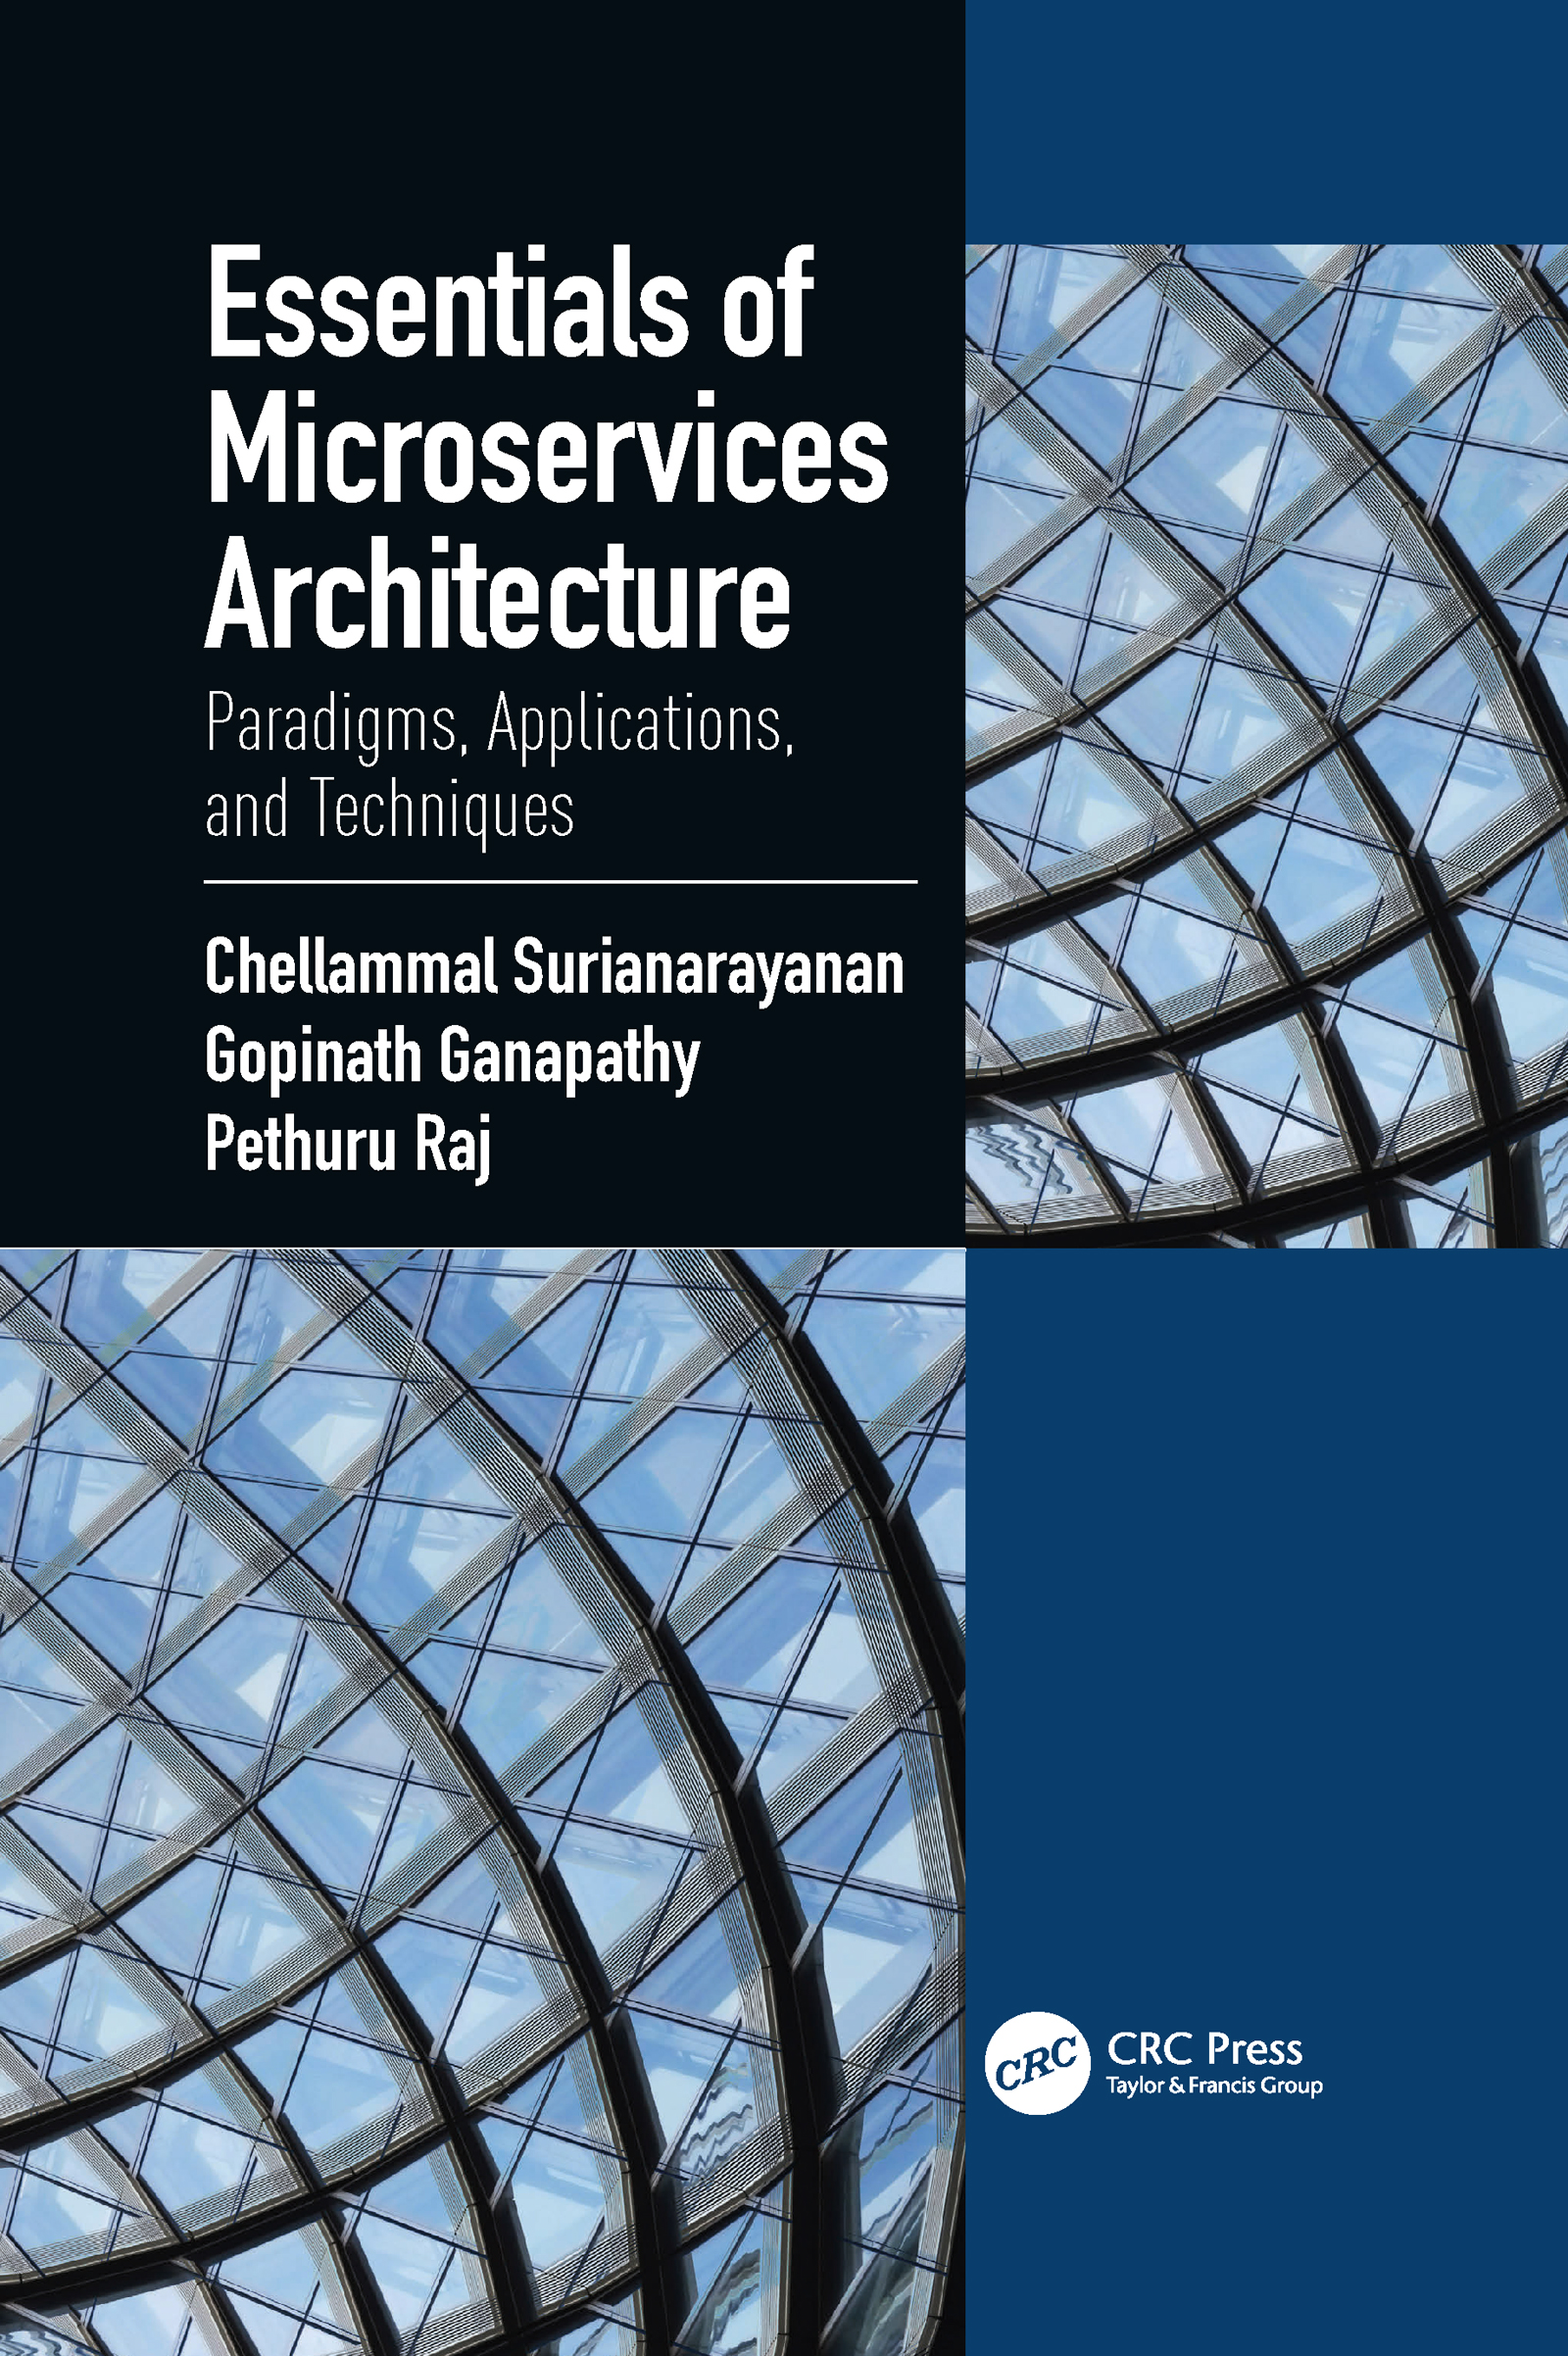 Essentials of Microservices Architecture